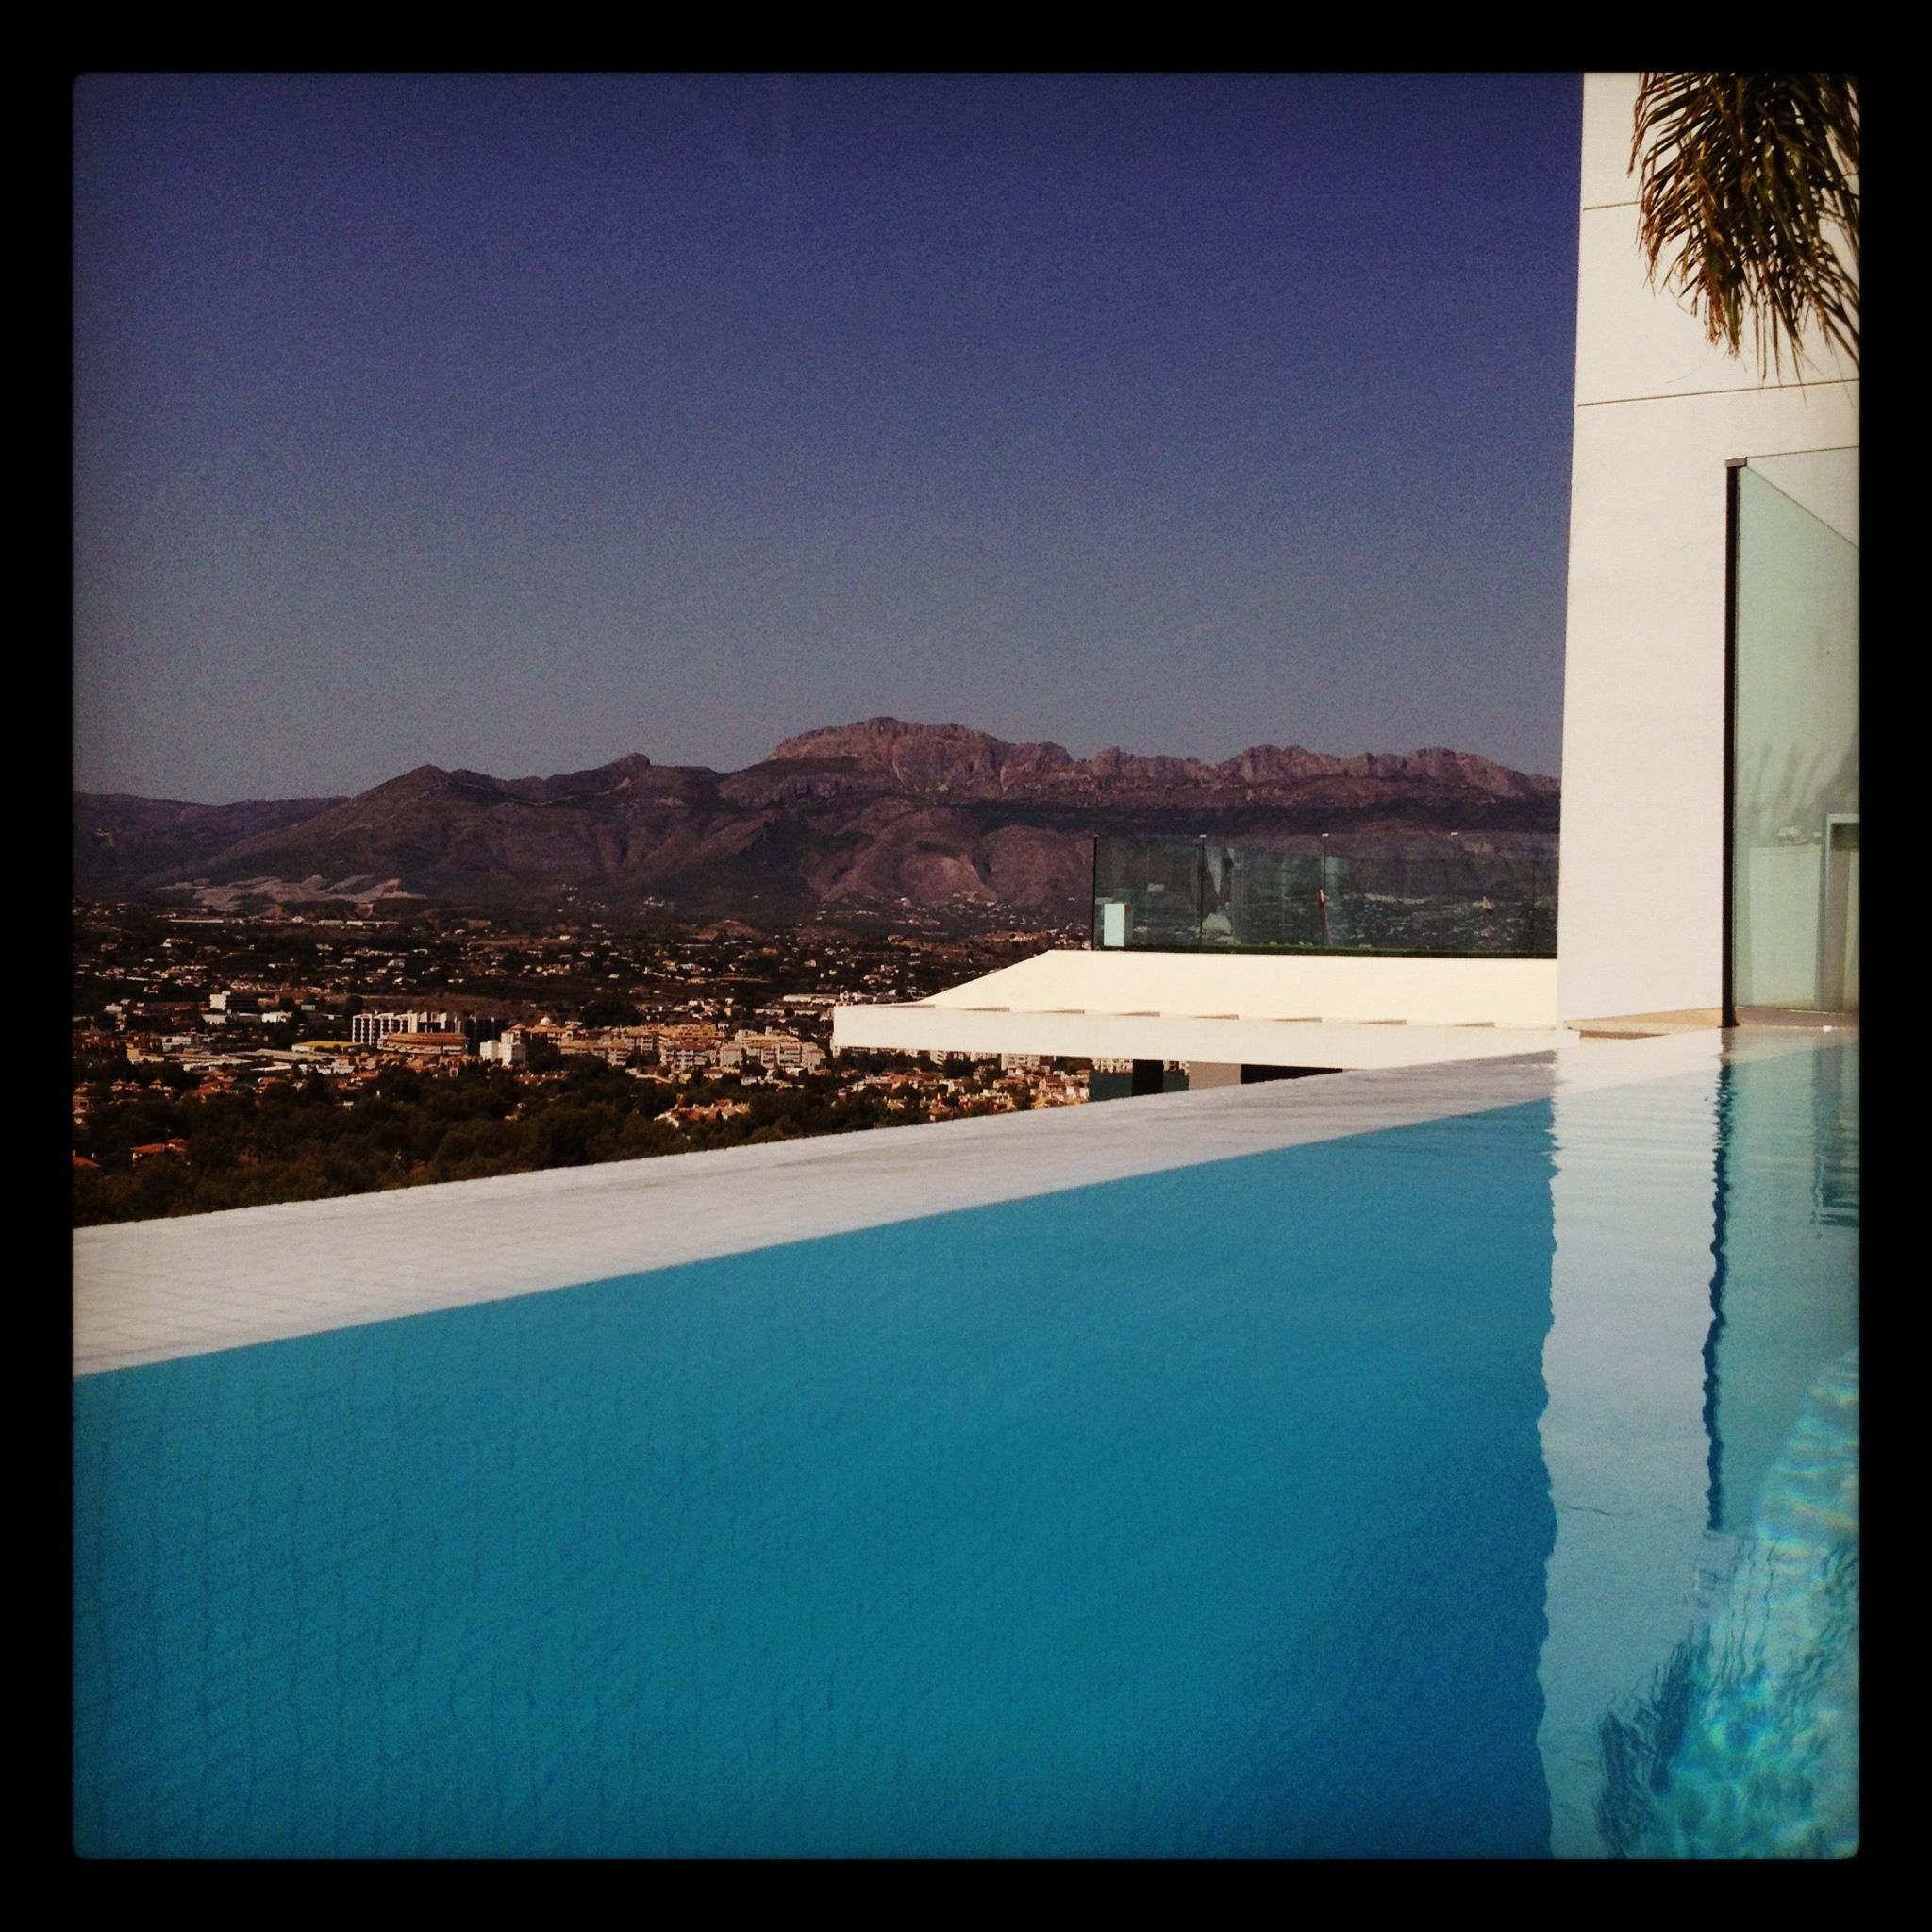 The sha wellness spa outside alicante spain a week of - Sha wellness spa ...